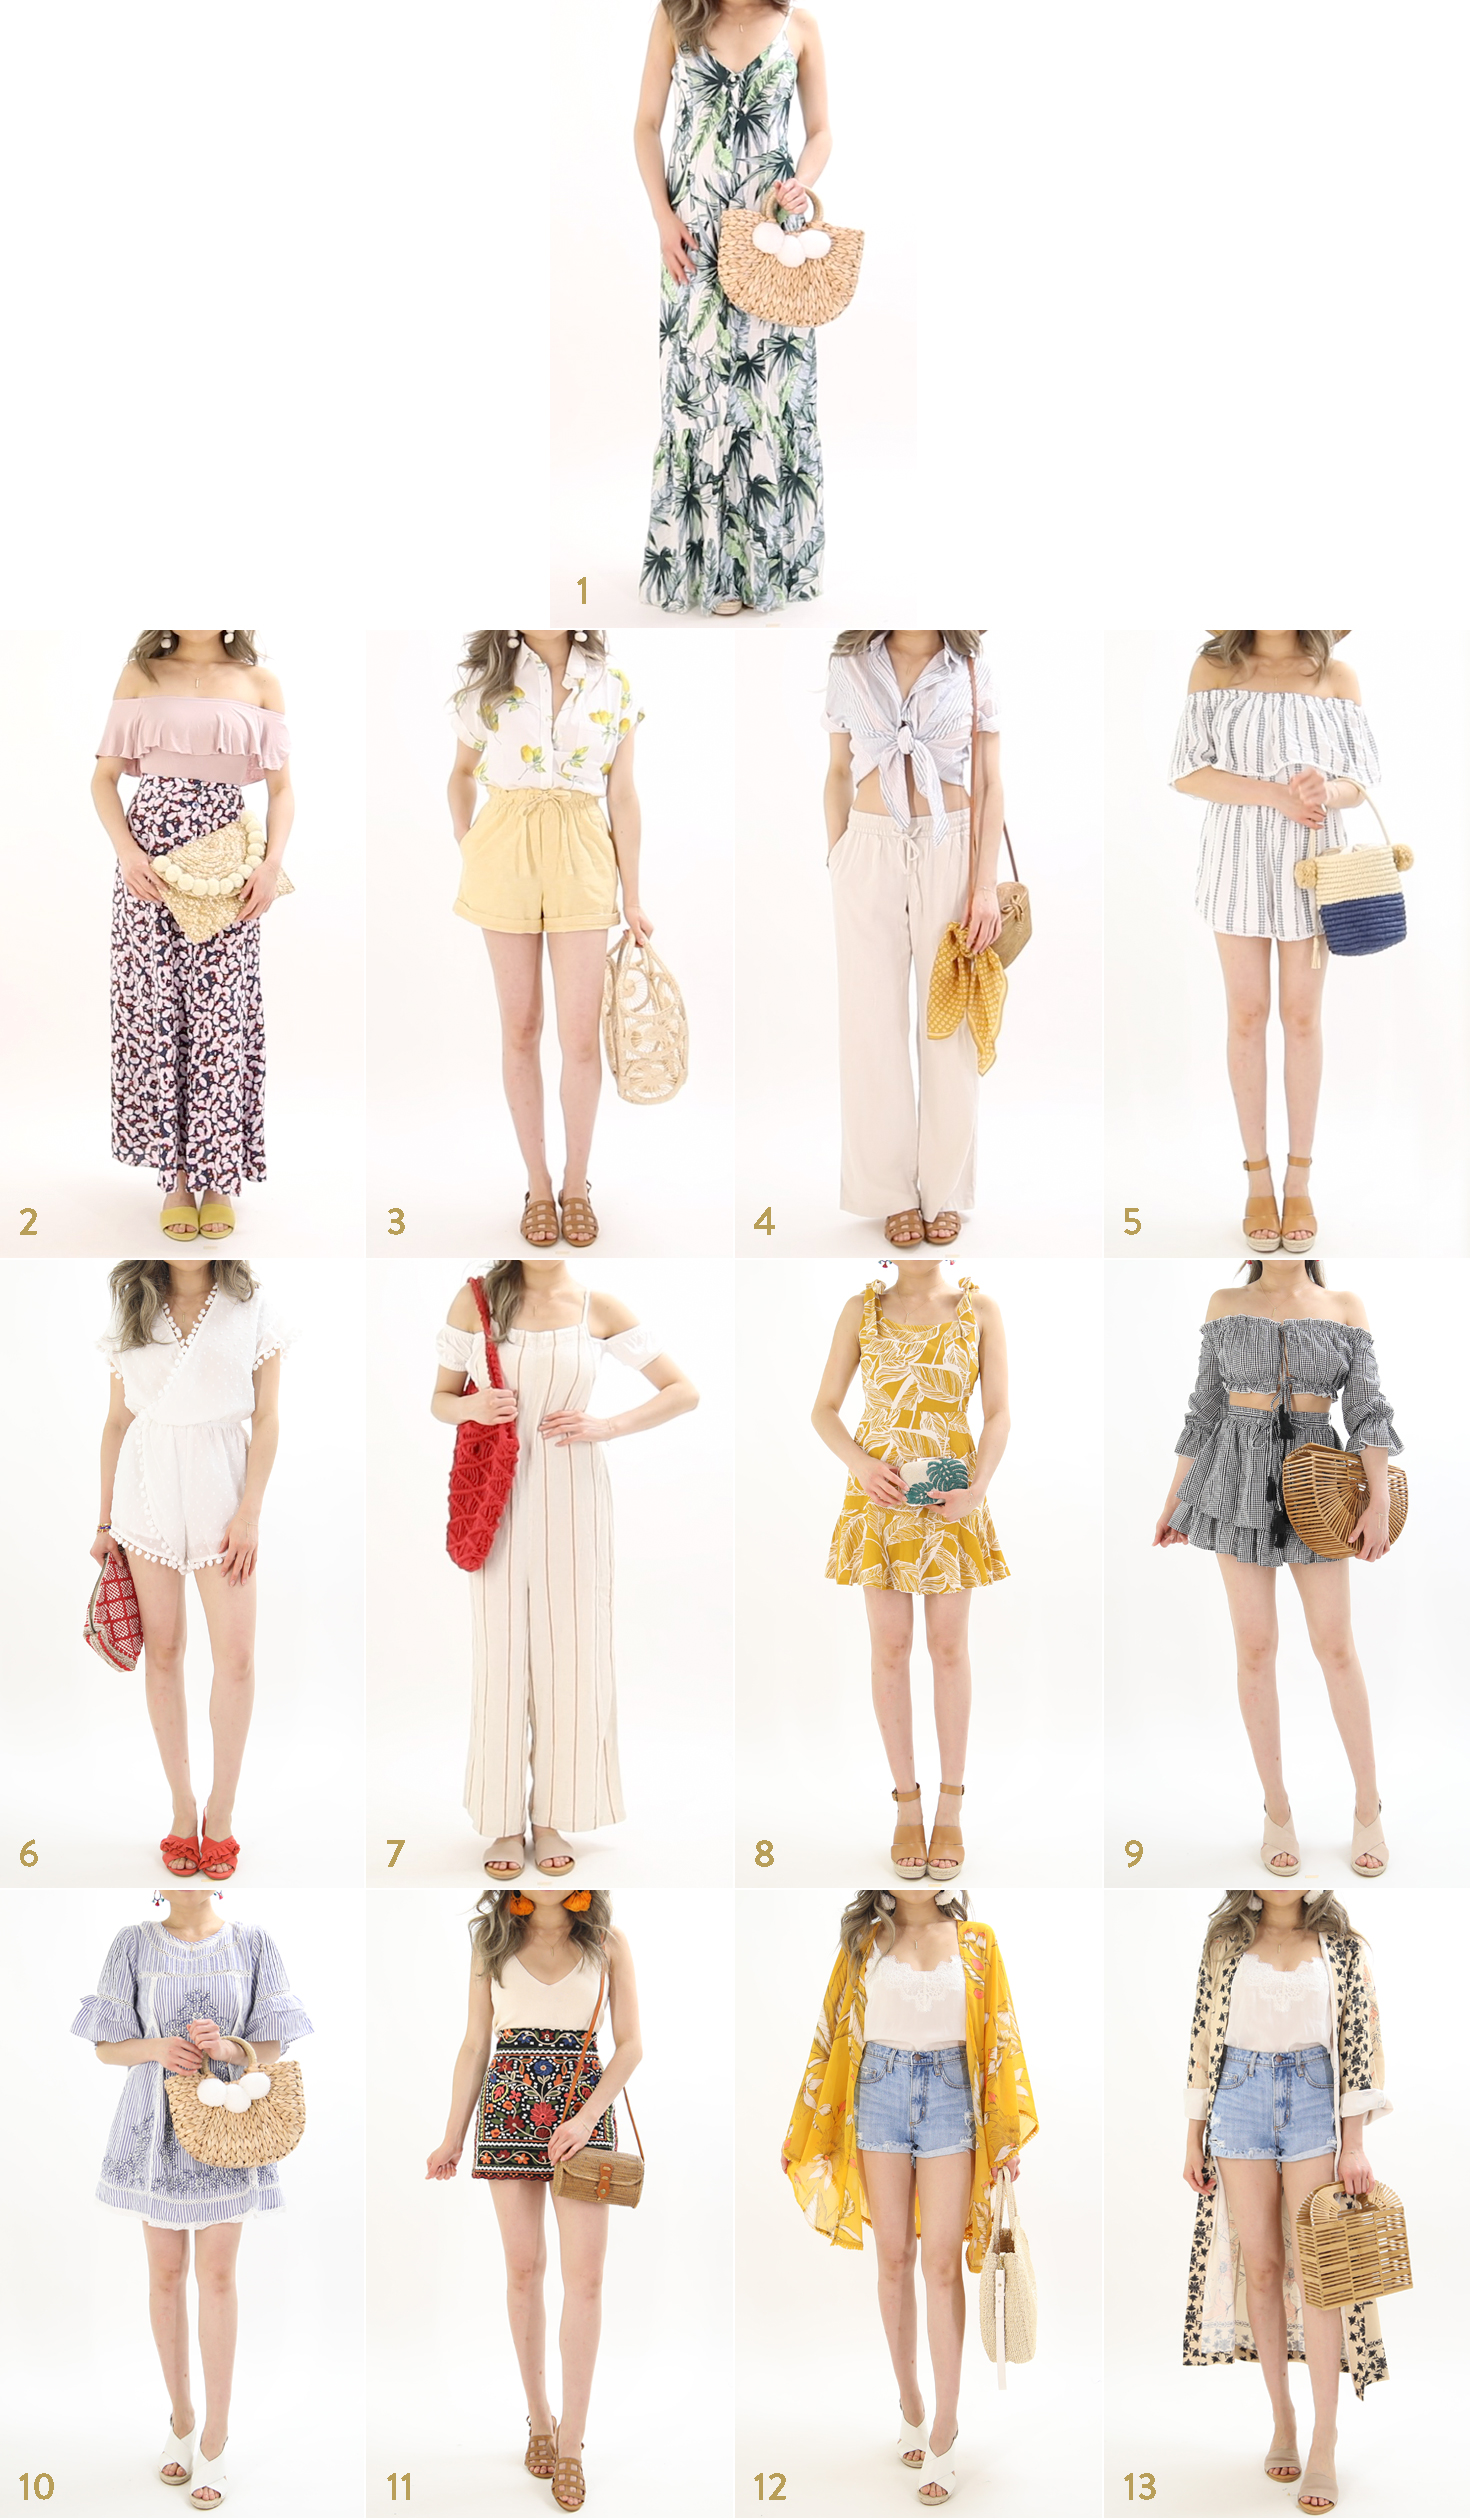 The Ultimate Summer Vacation Outfit Ideas Guide By Miss Louie